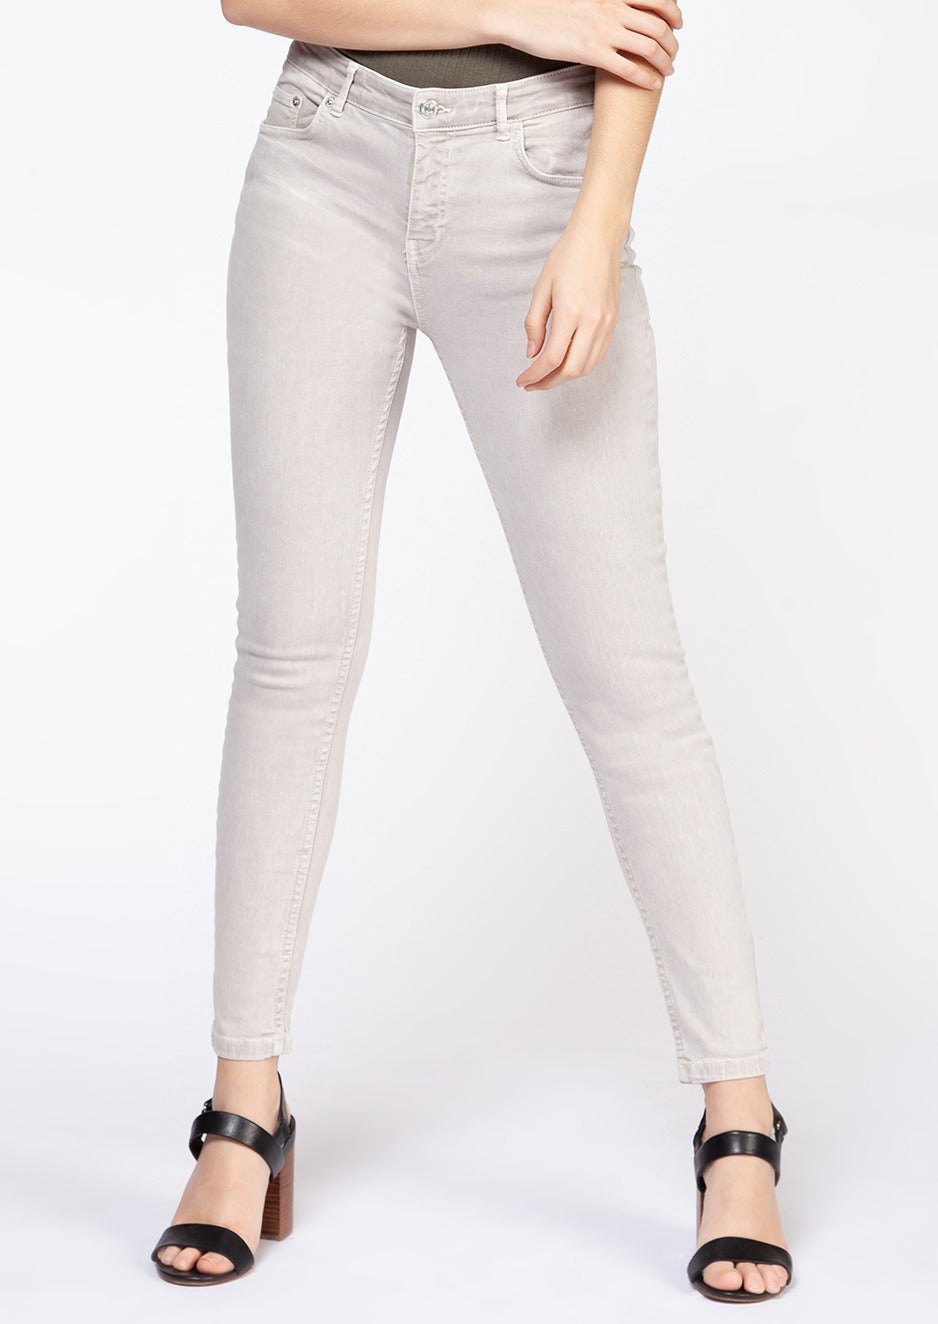 Dex Zoe High Rise Ultra Skinny Jeans | Alabaster Wash